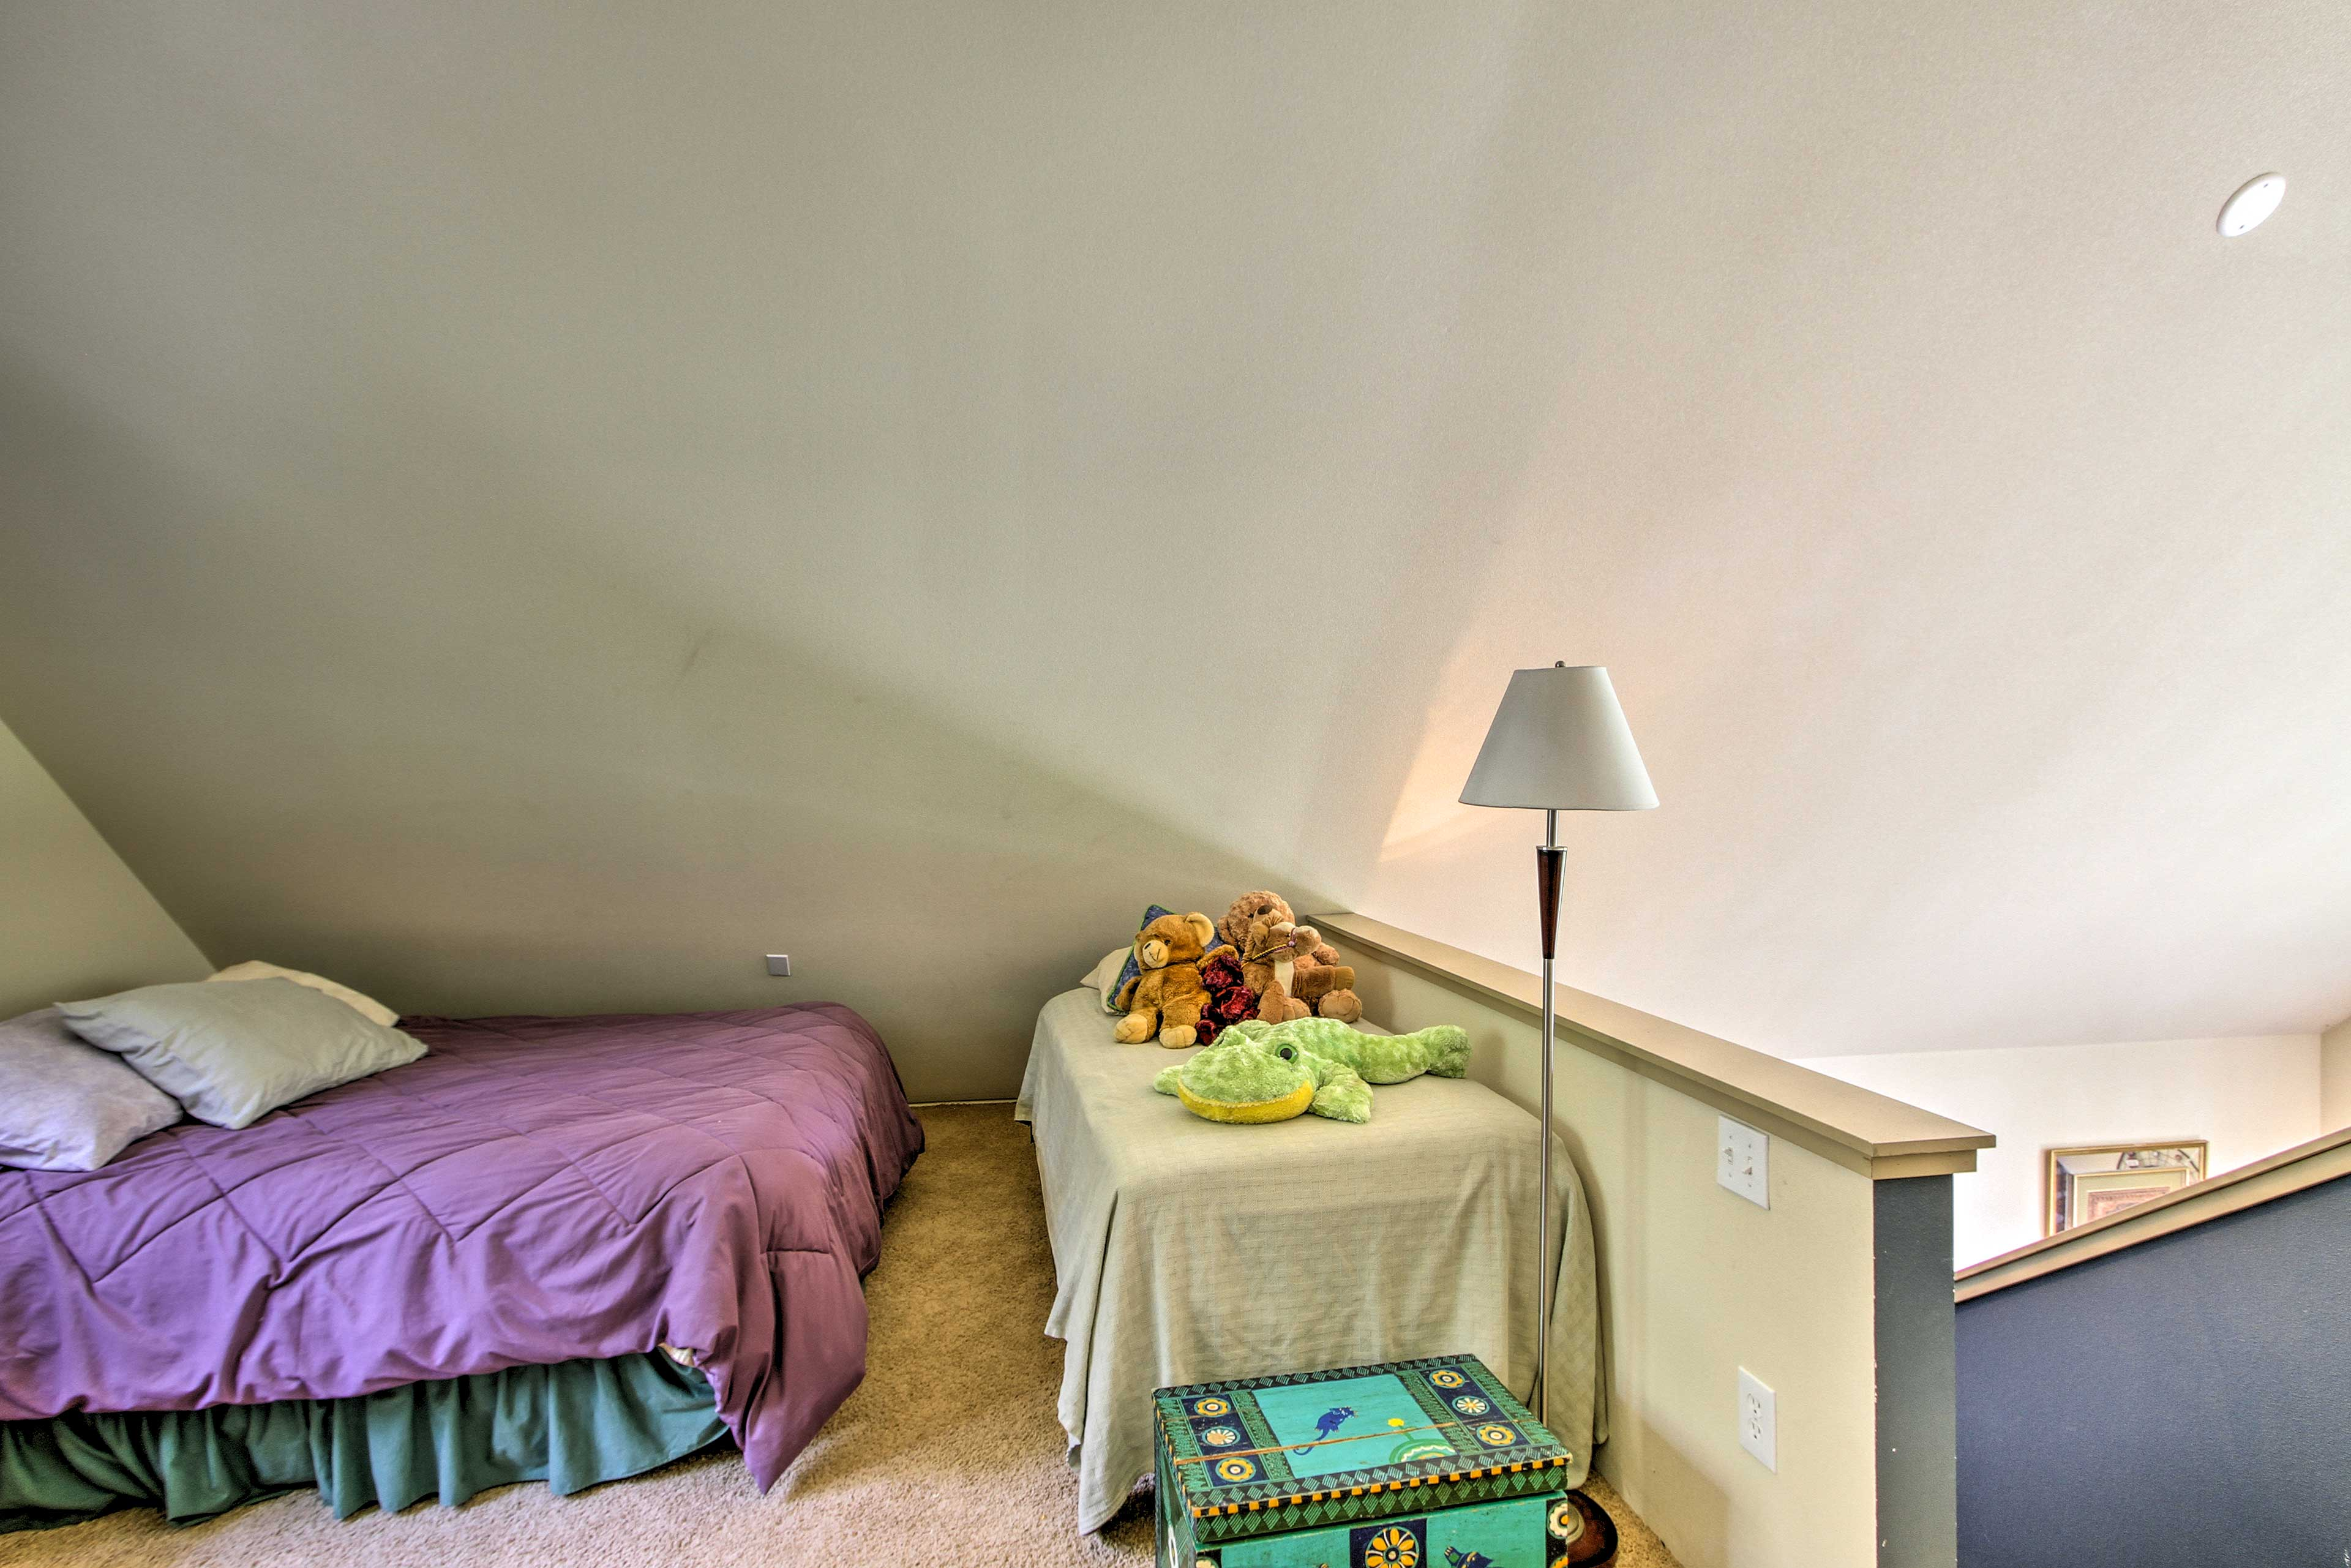 With a queen, full, and twin bed, the loft sleeps 5!